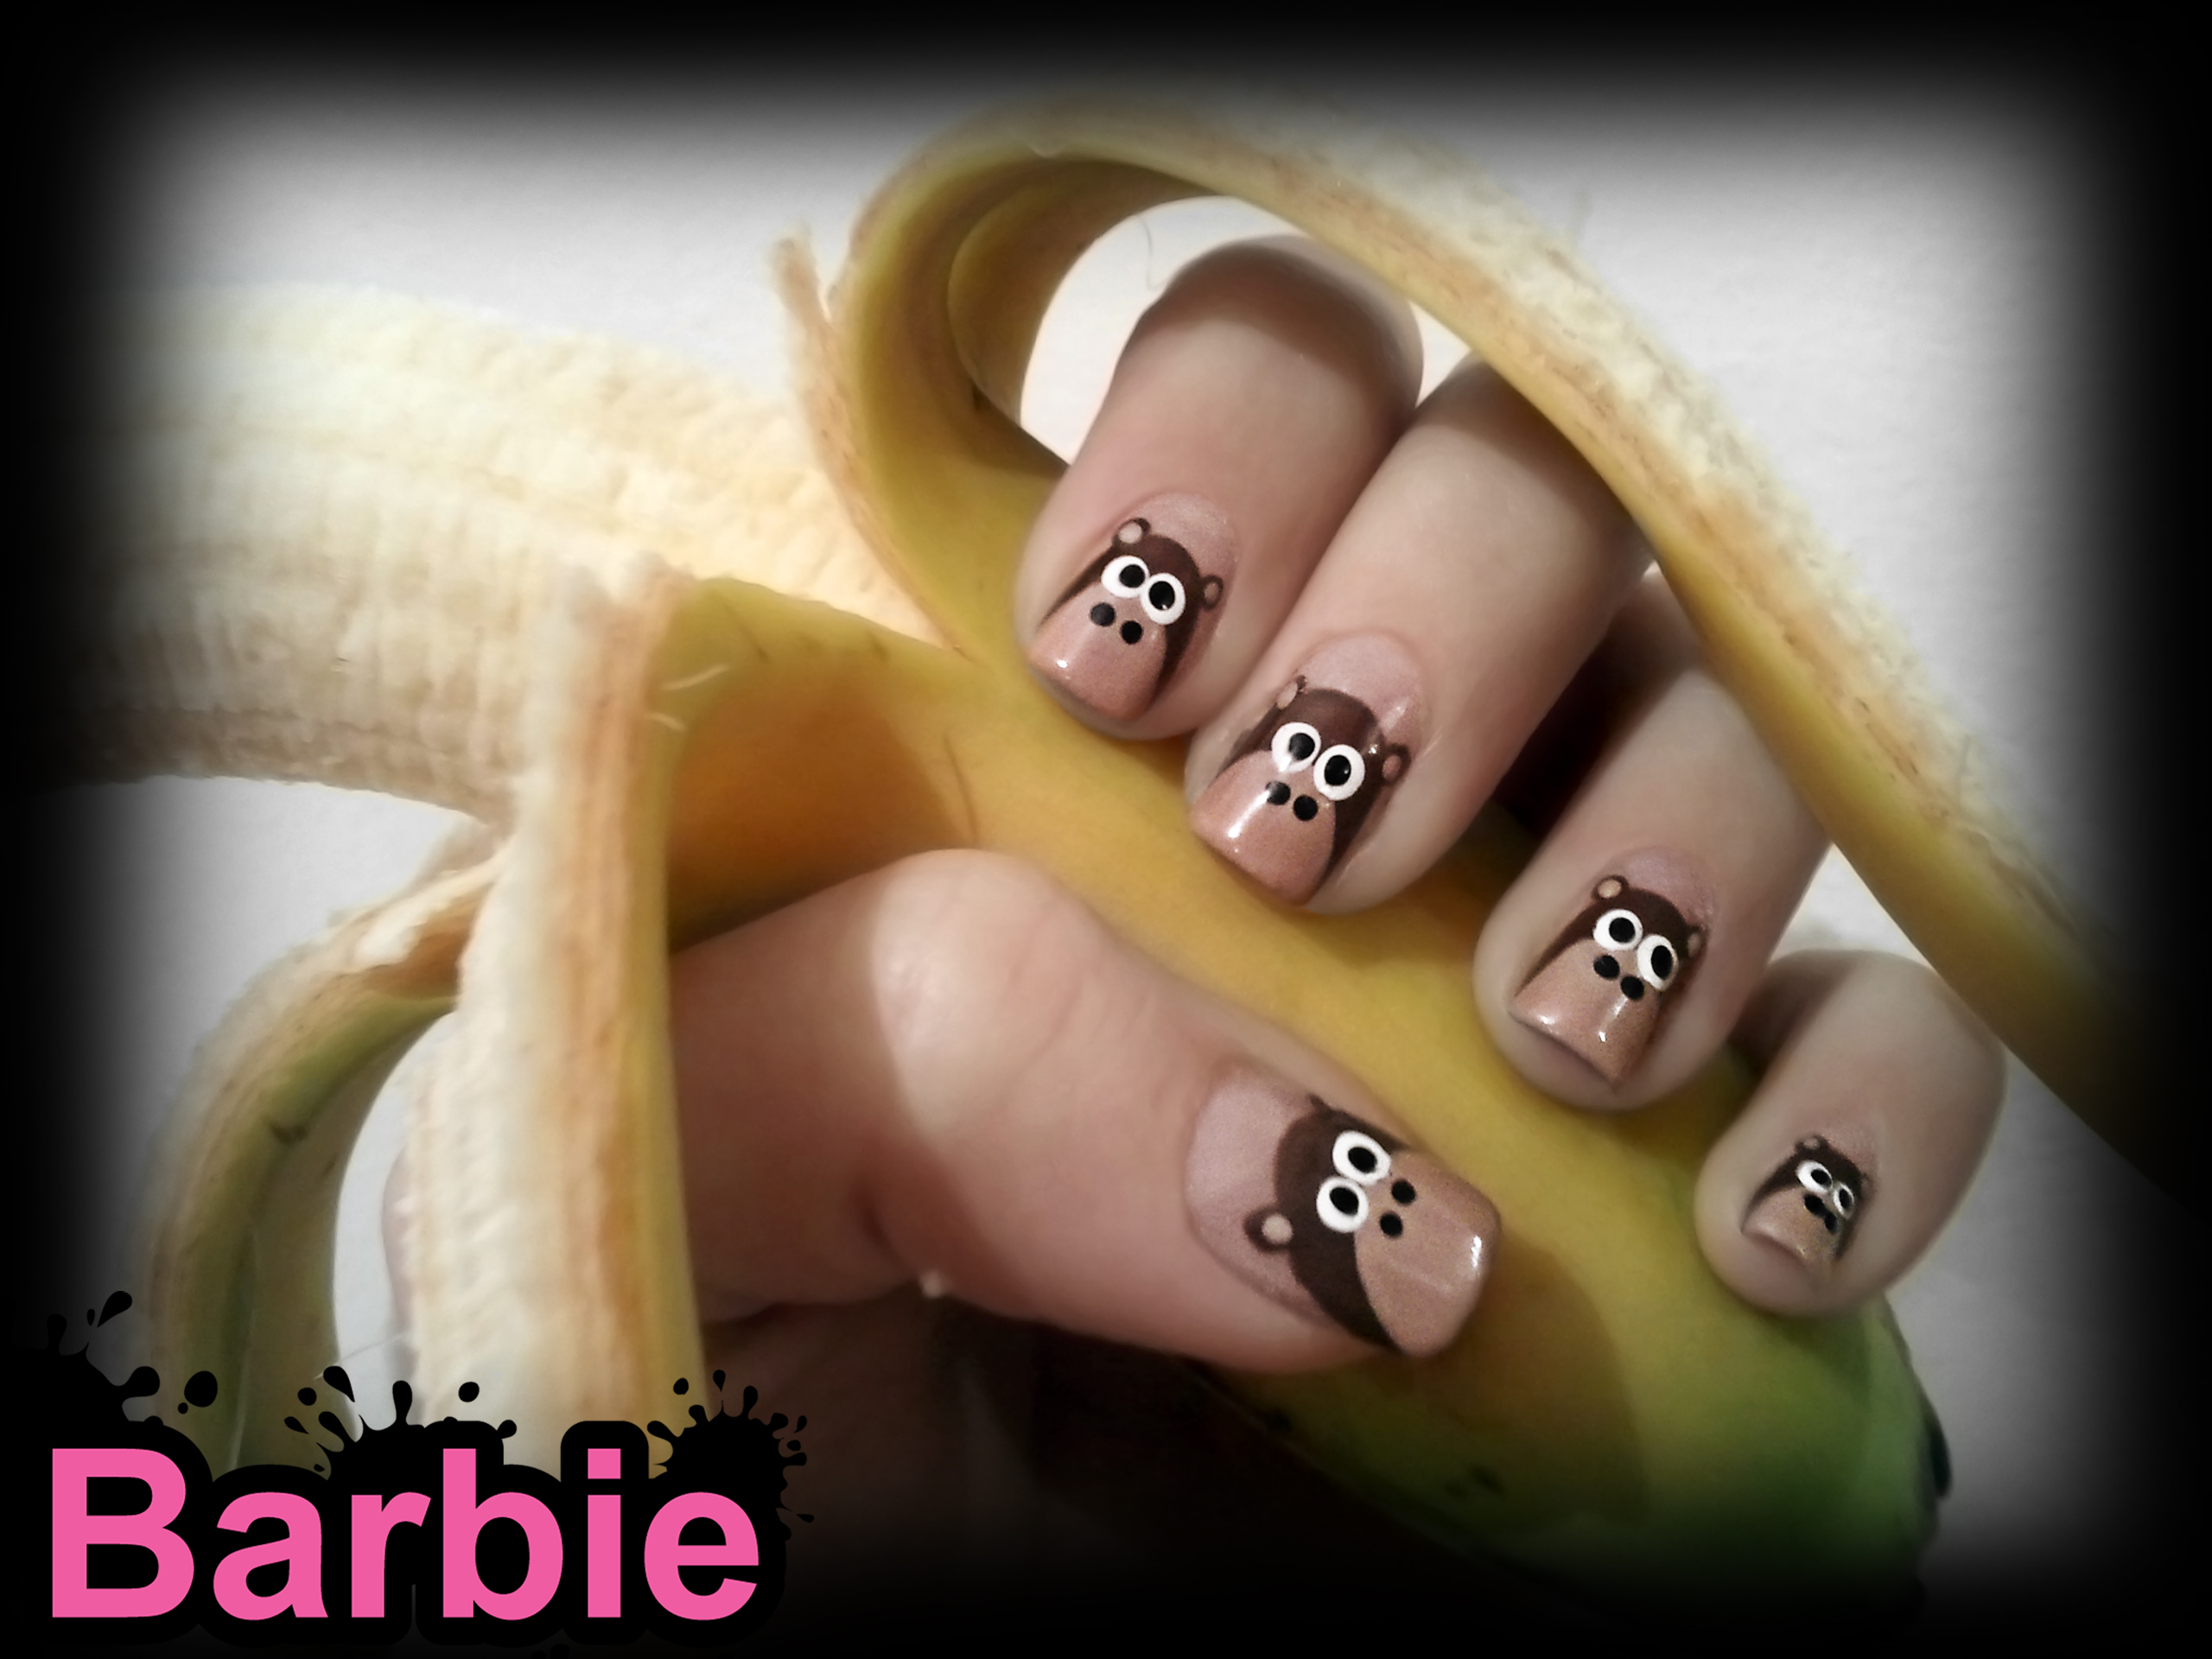 Monkey Nails by BarbieNailArt on DeviantArt